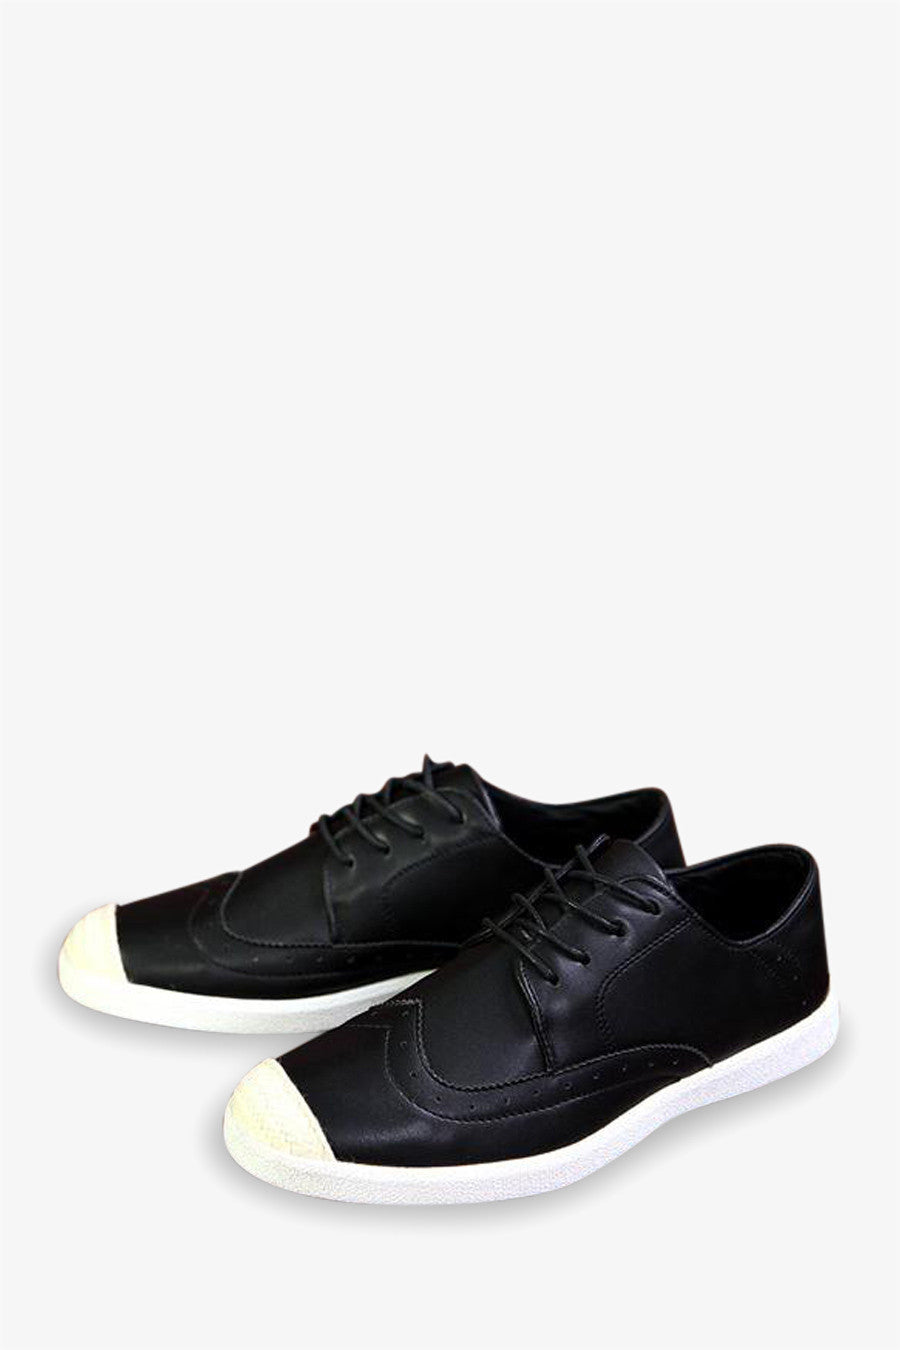 Vintage Style Sneakers In Black